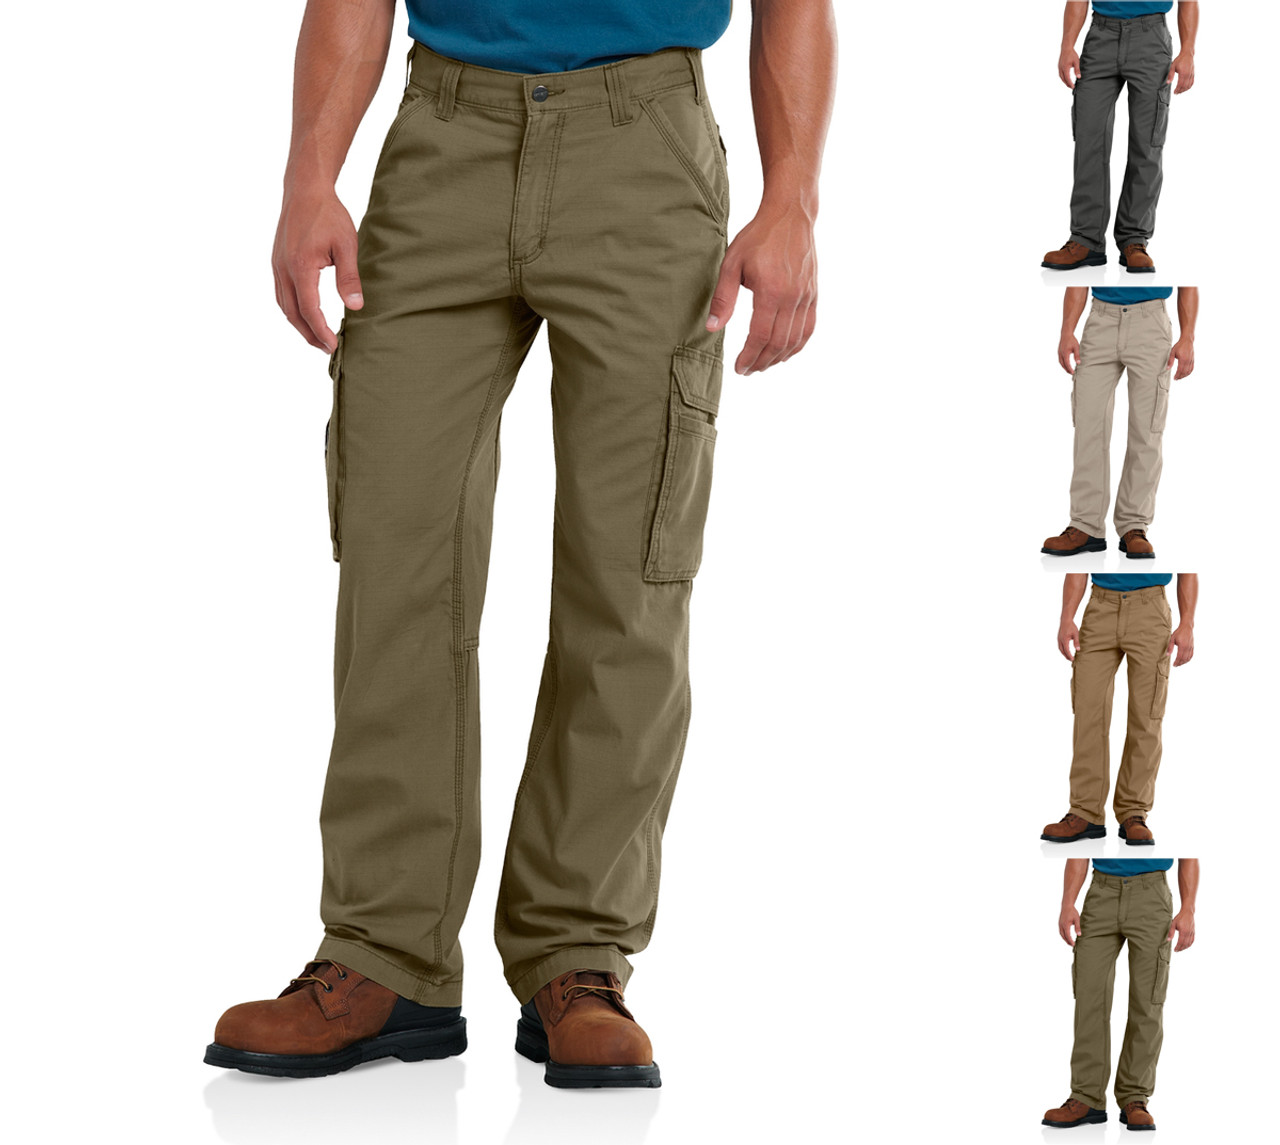 e490d5420c Carhartt Force Tappen Cargo Pants - Use Coupon Code: SAVE20 for Special  Savings | Free Shipping on All Orders